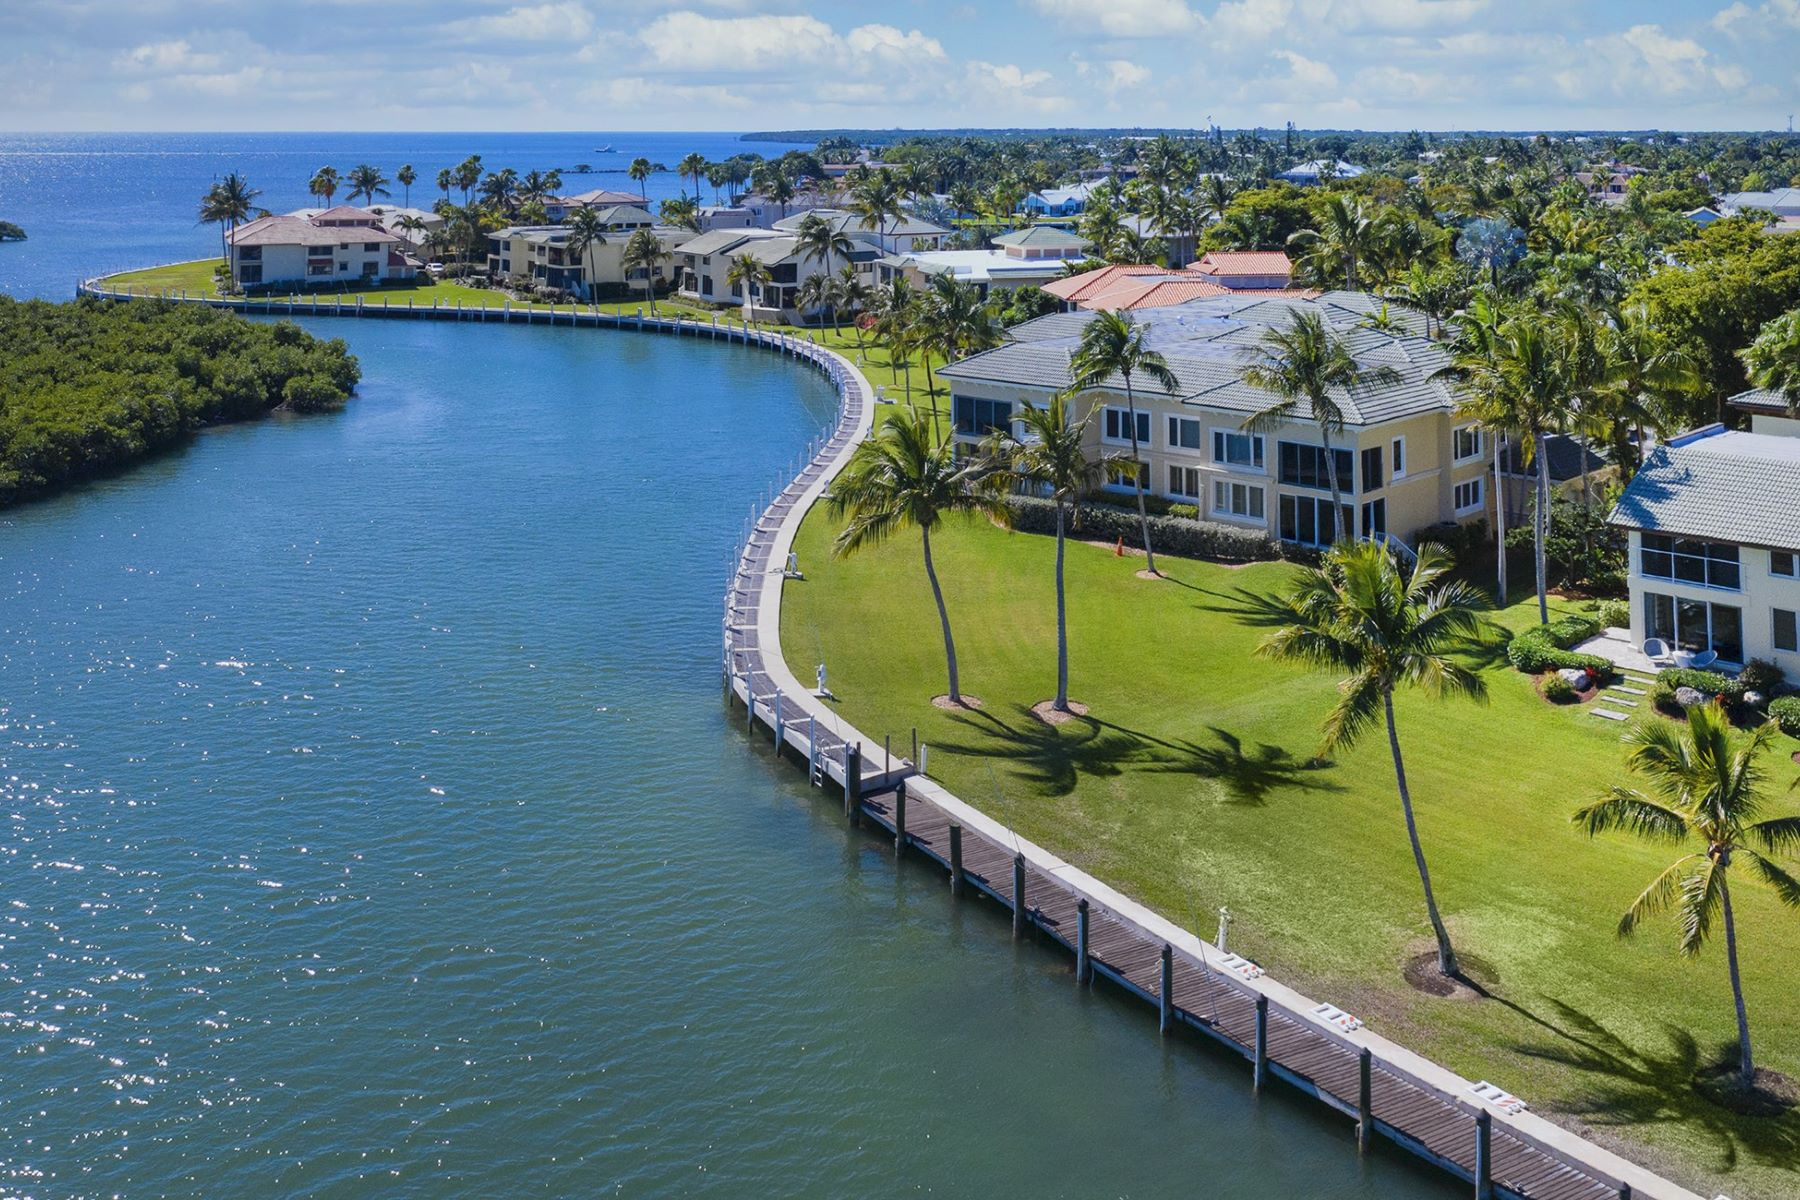 Condominiums for Sale at 31 Pumpkin Cay Road, #A, Key Largo, FL 31 Pumpkin Cay Road, A, Key Largo, Florida 33037 United States